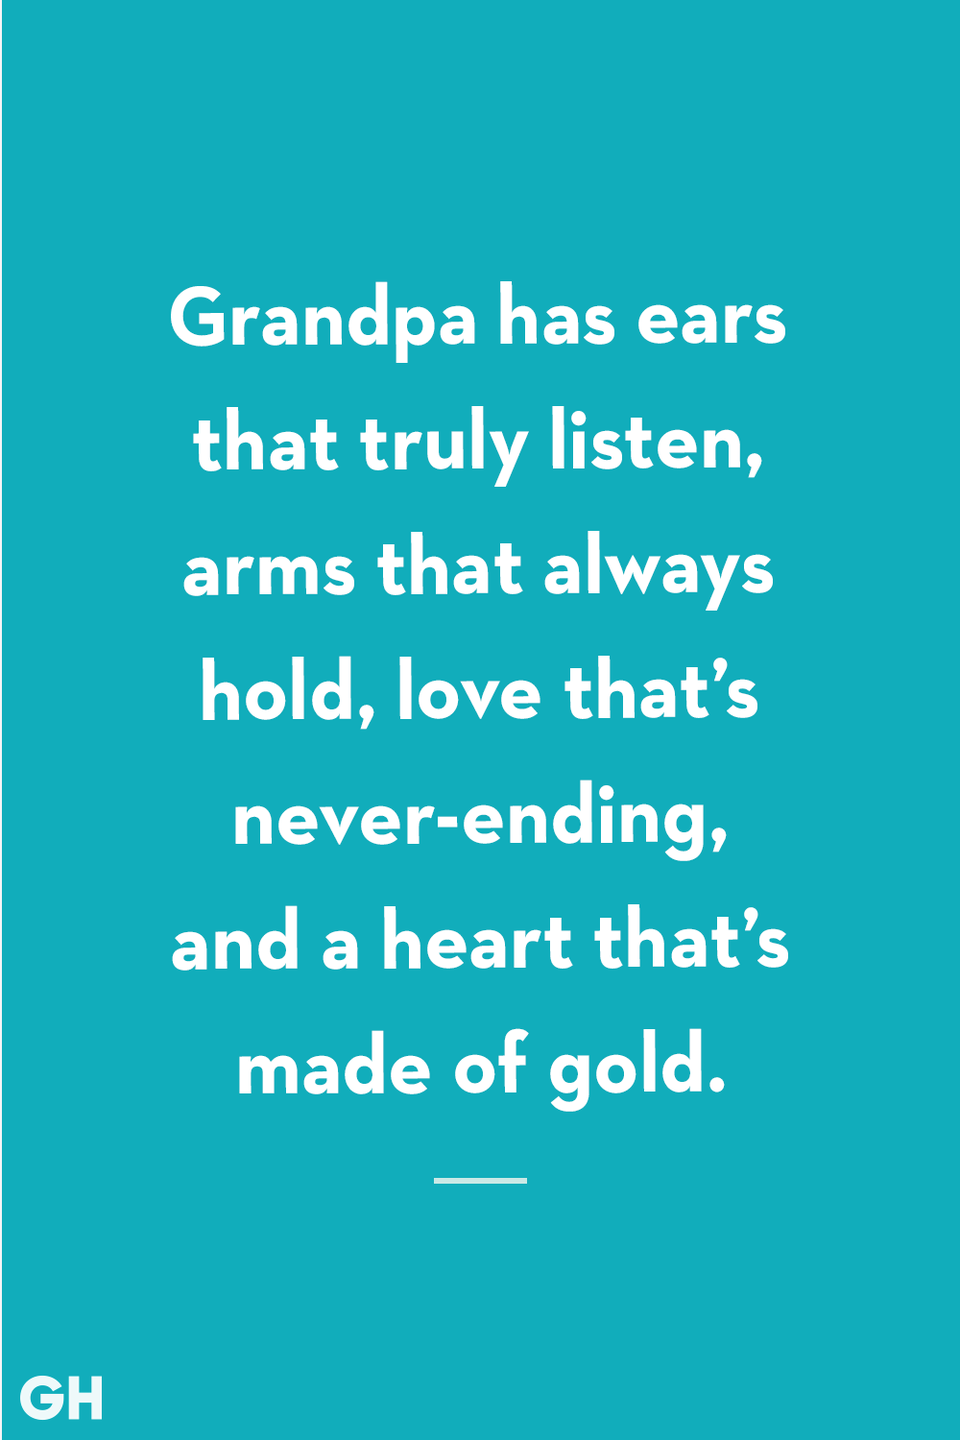 <p>Grandpa has ears that truly listen, arms that always hold, love that's never-ending, and a heart that's made of gold.</p>